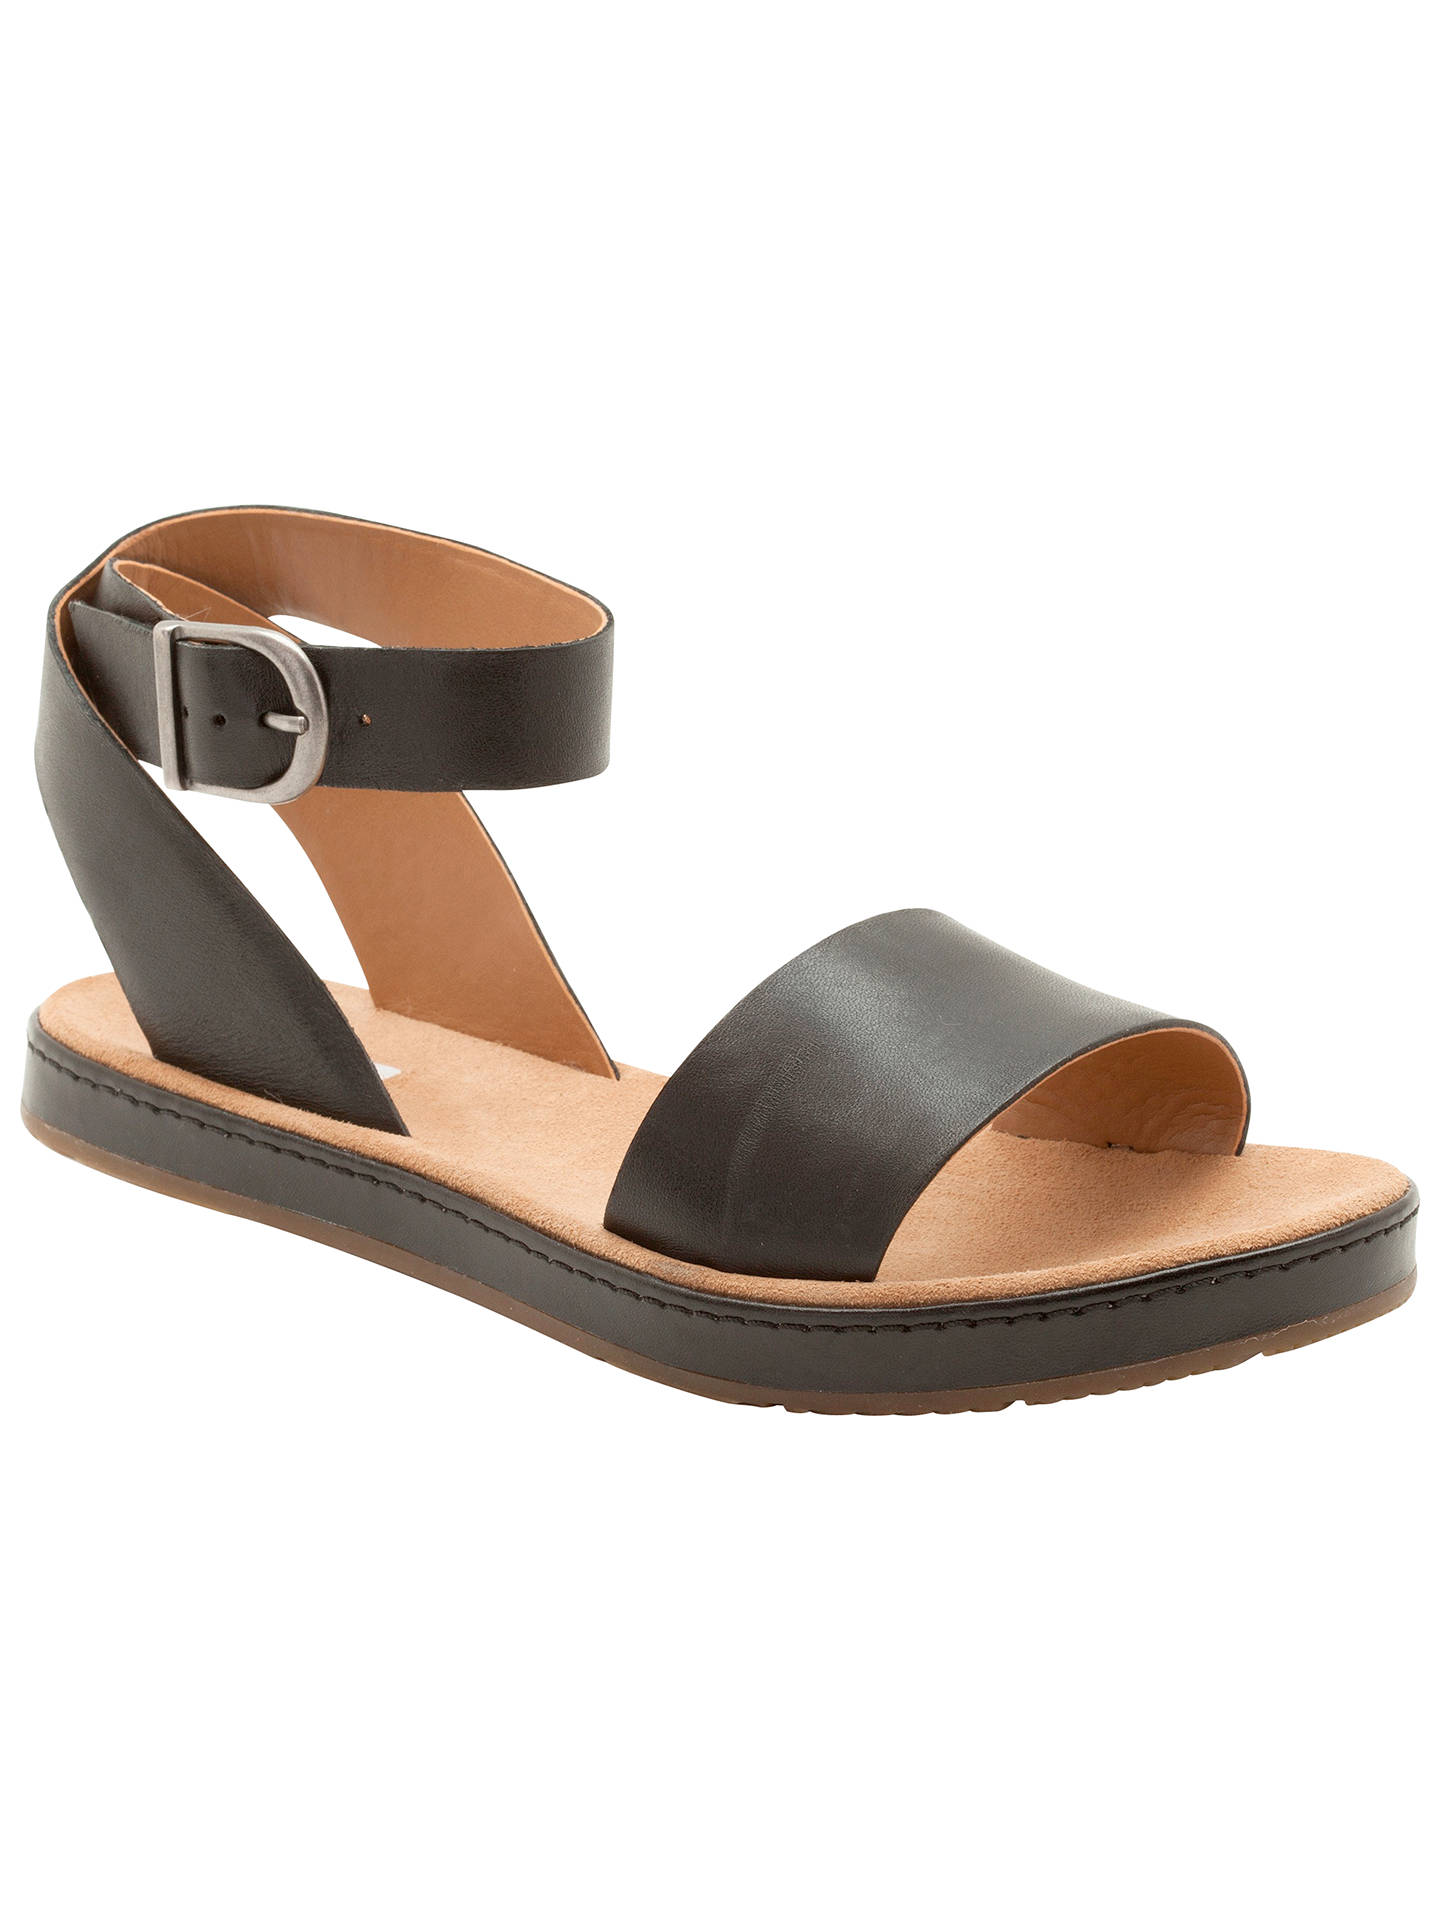 ca91ae82daea Clarks Romantic Moon Leather Sandals at John Lewis   Partners